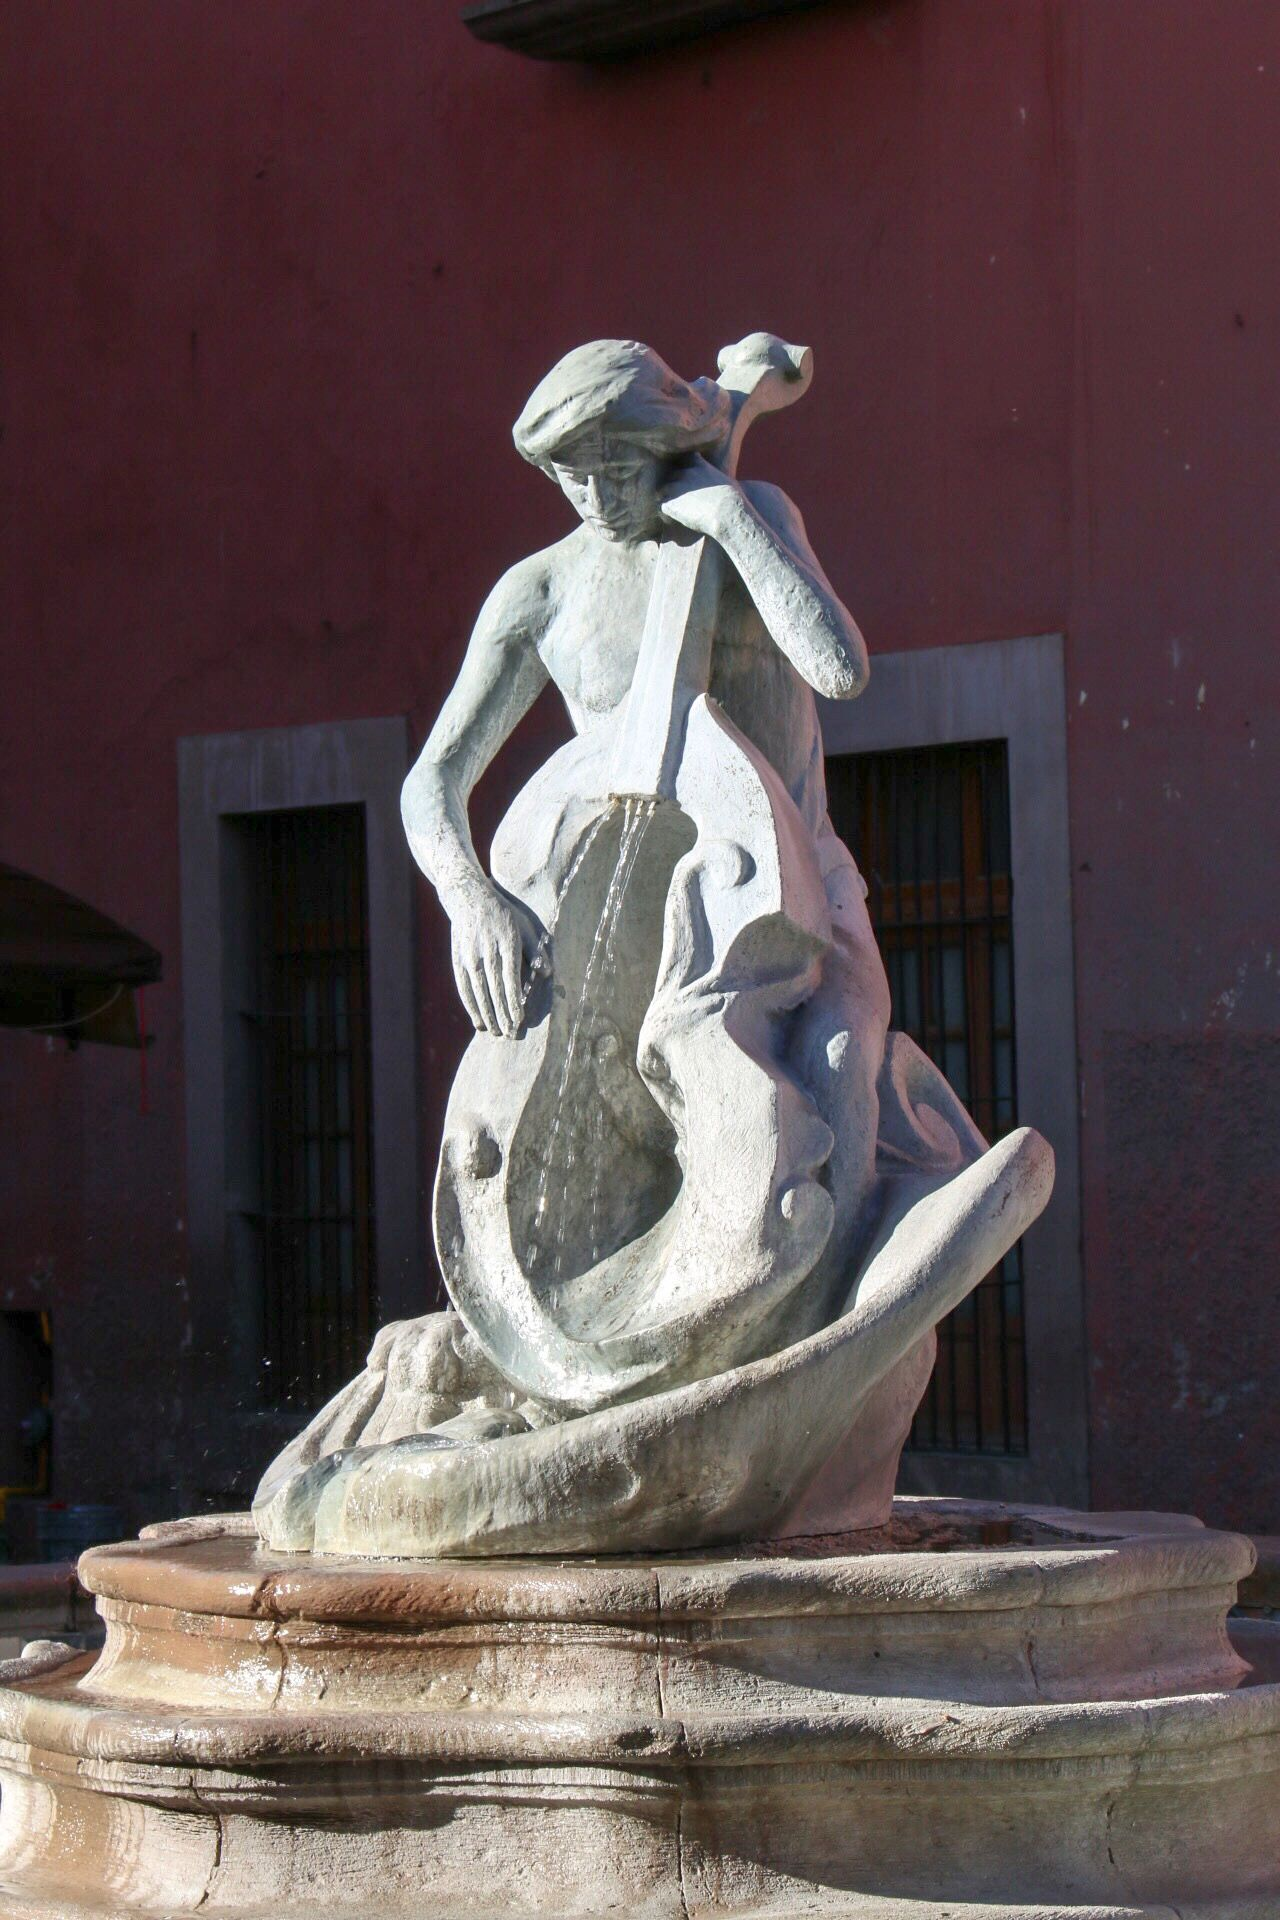 Sculpture Statue Art And Craft Human Representation Building Exterior Travel Destinations No People Outdoors City Day Sculpted Water